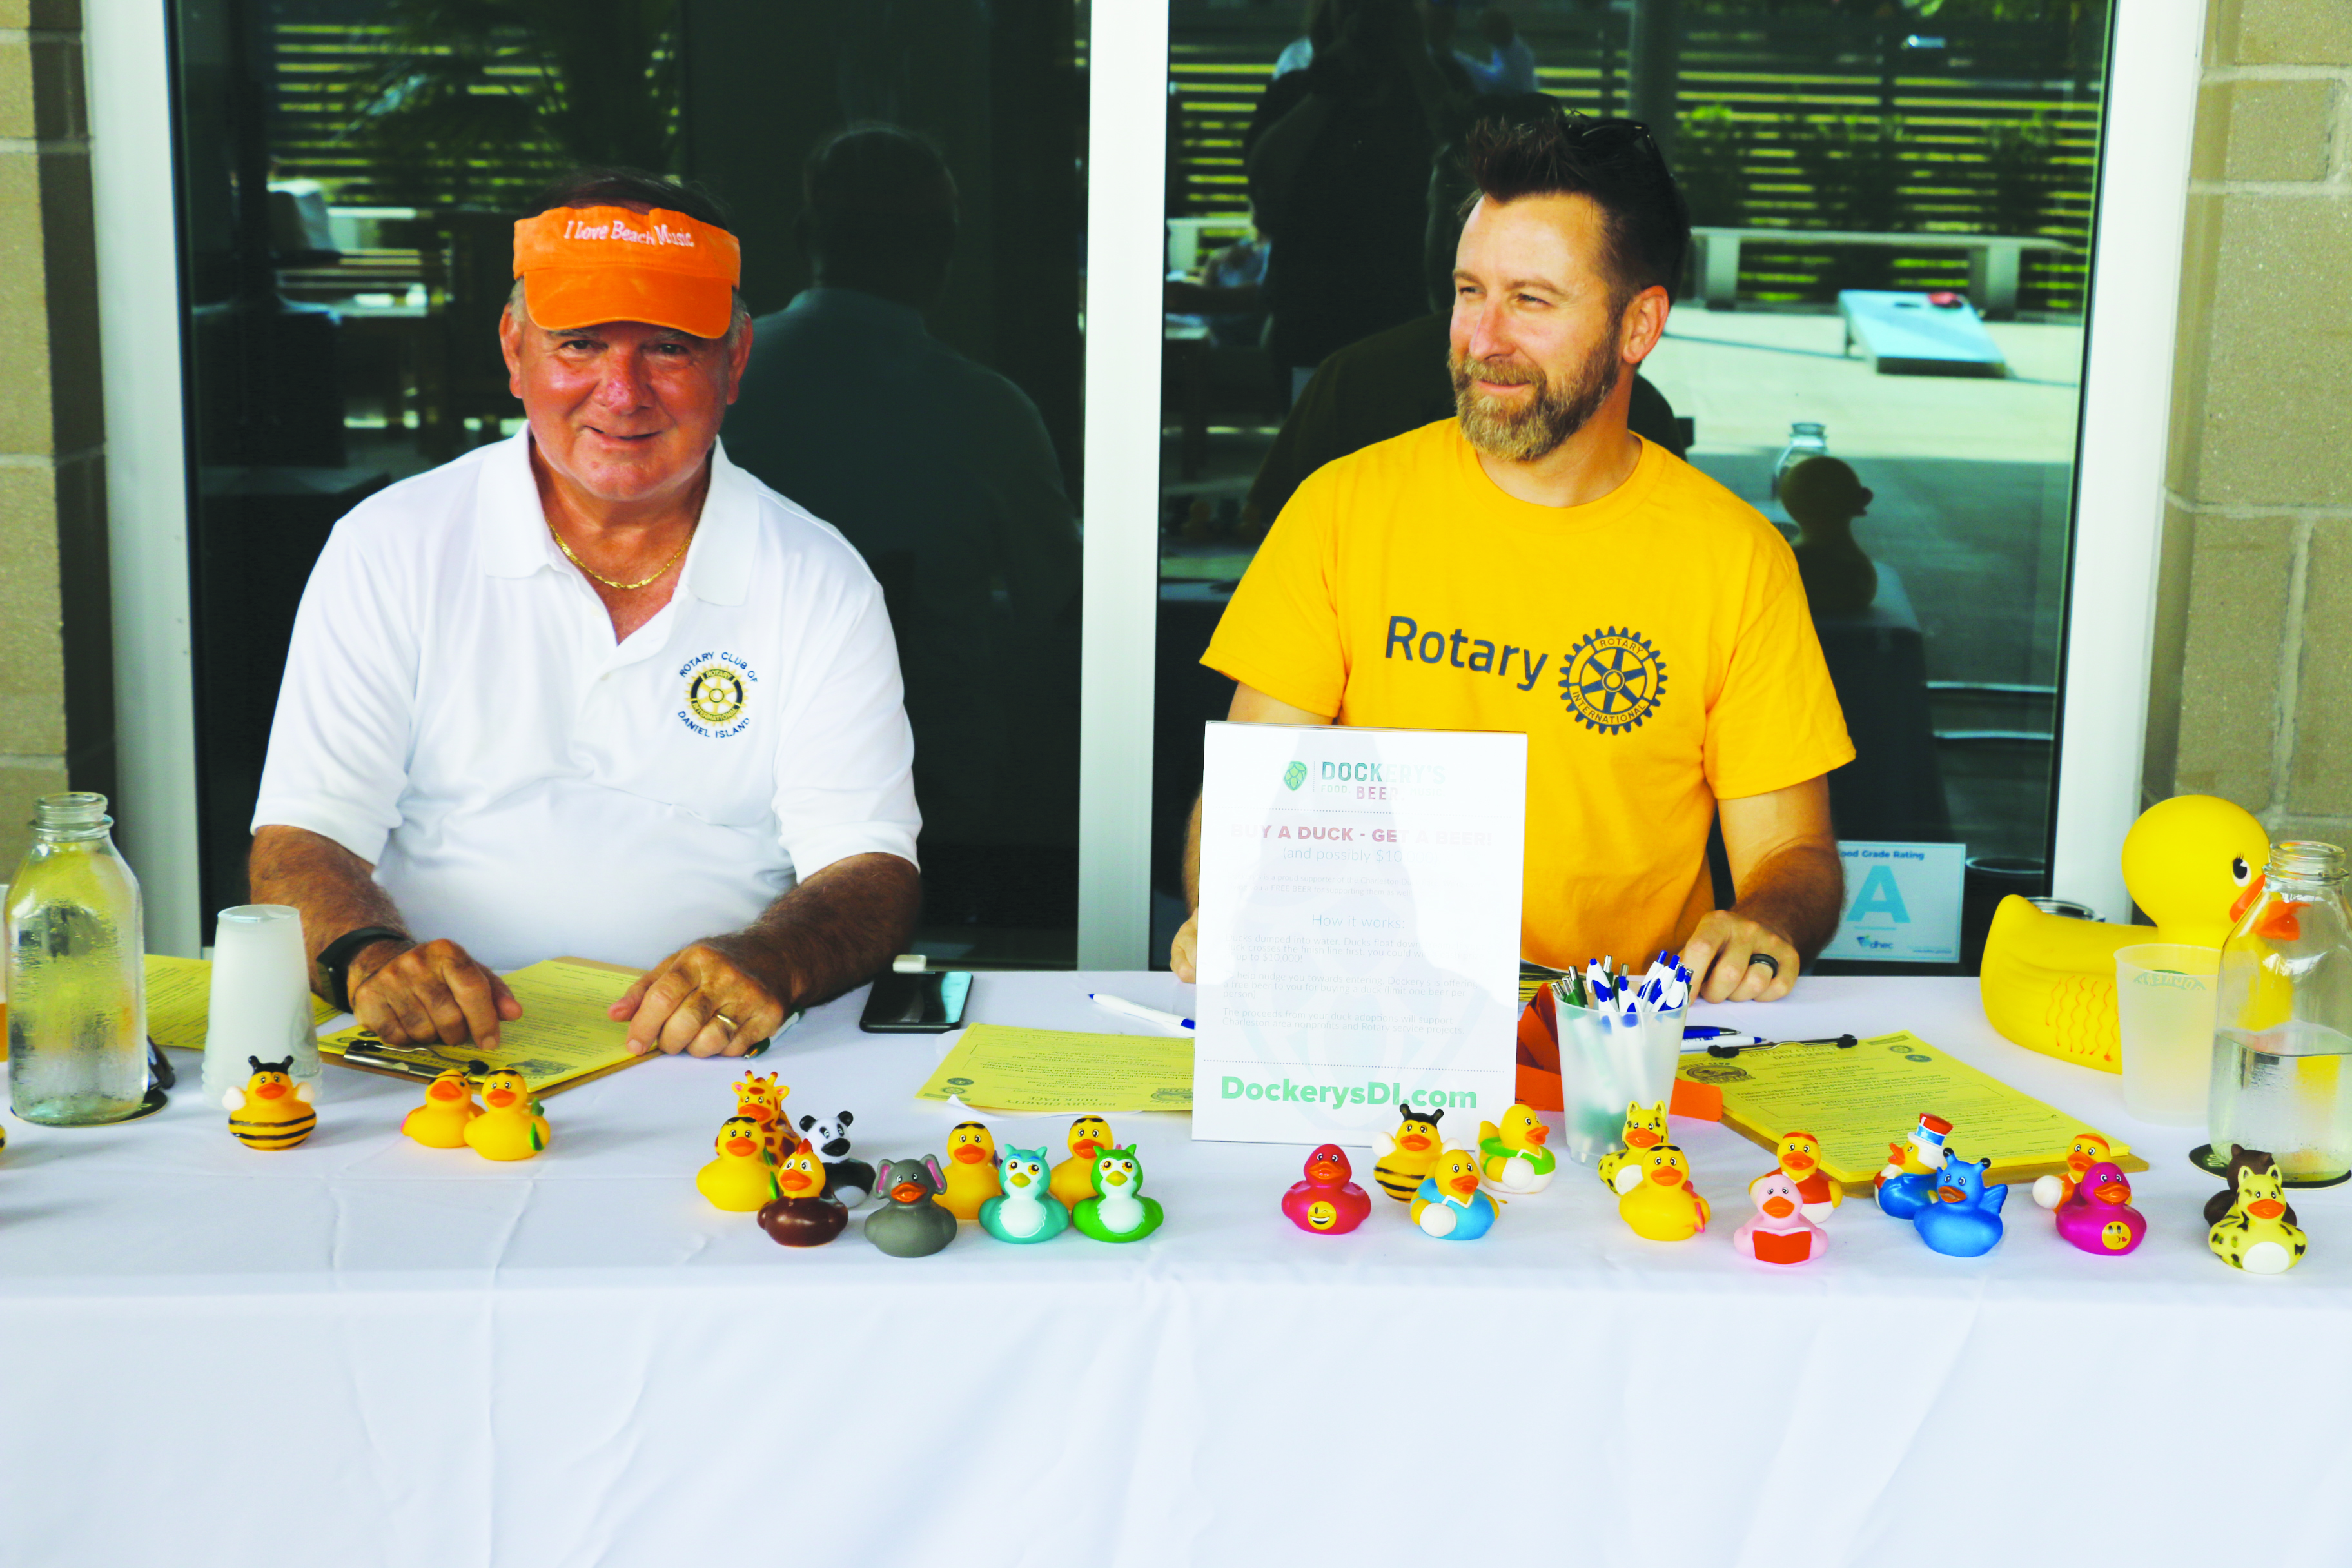 The sign-up table was filled with colorful ducks available for purchase.